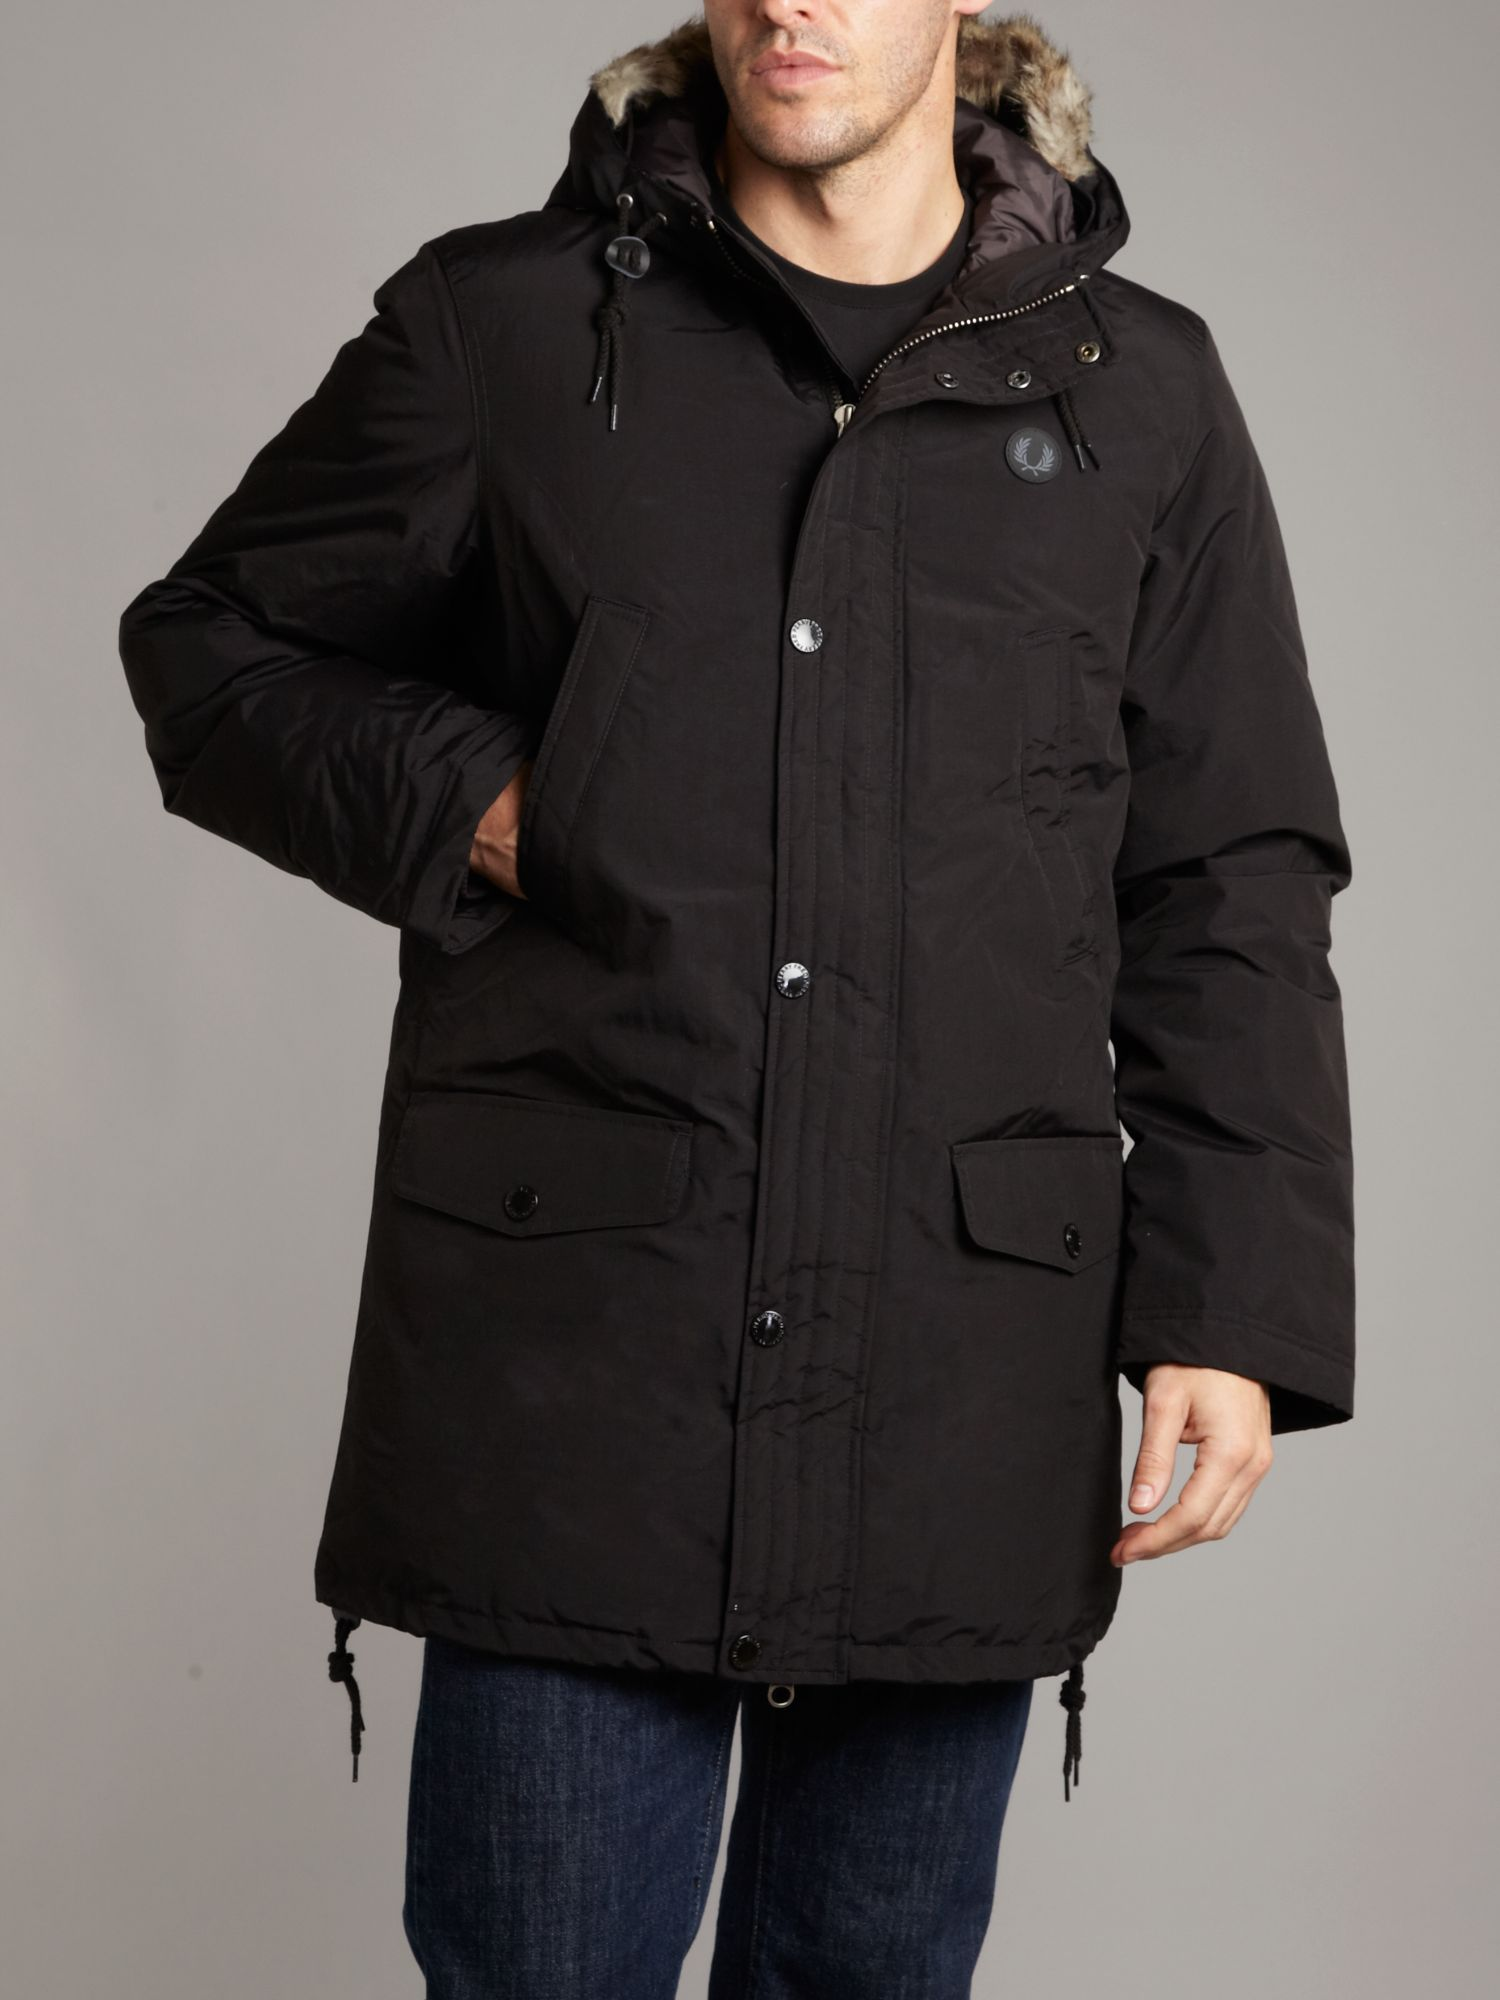 fred perry down parka in black for men lyst. Black Bedroom Furniture Sets. Home Design Ideas